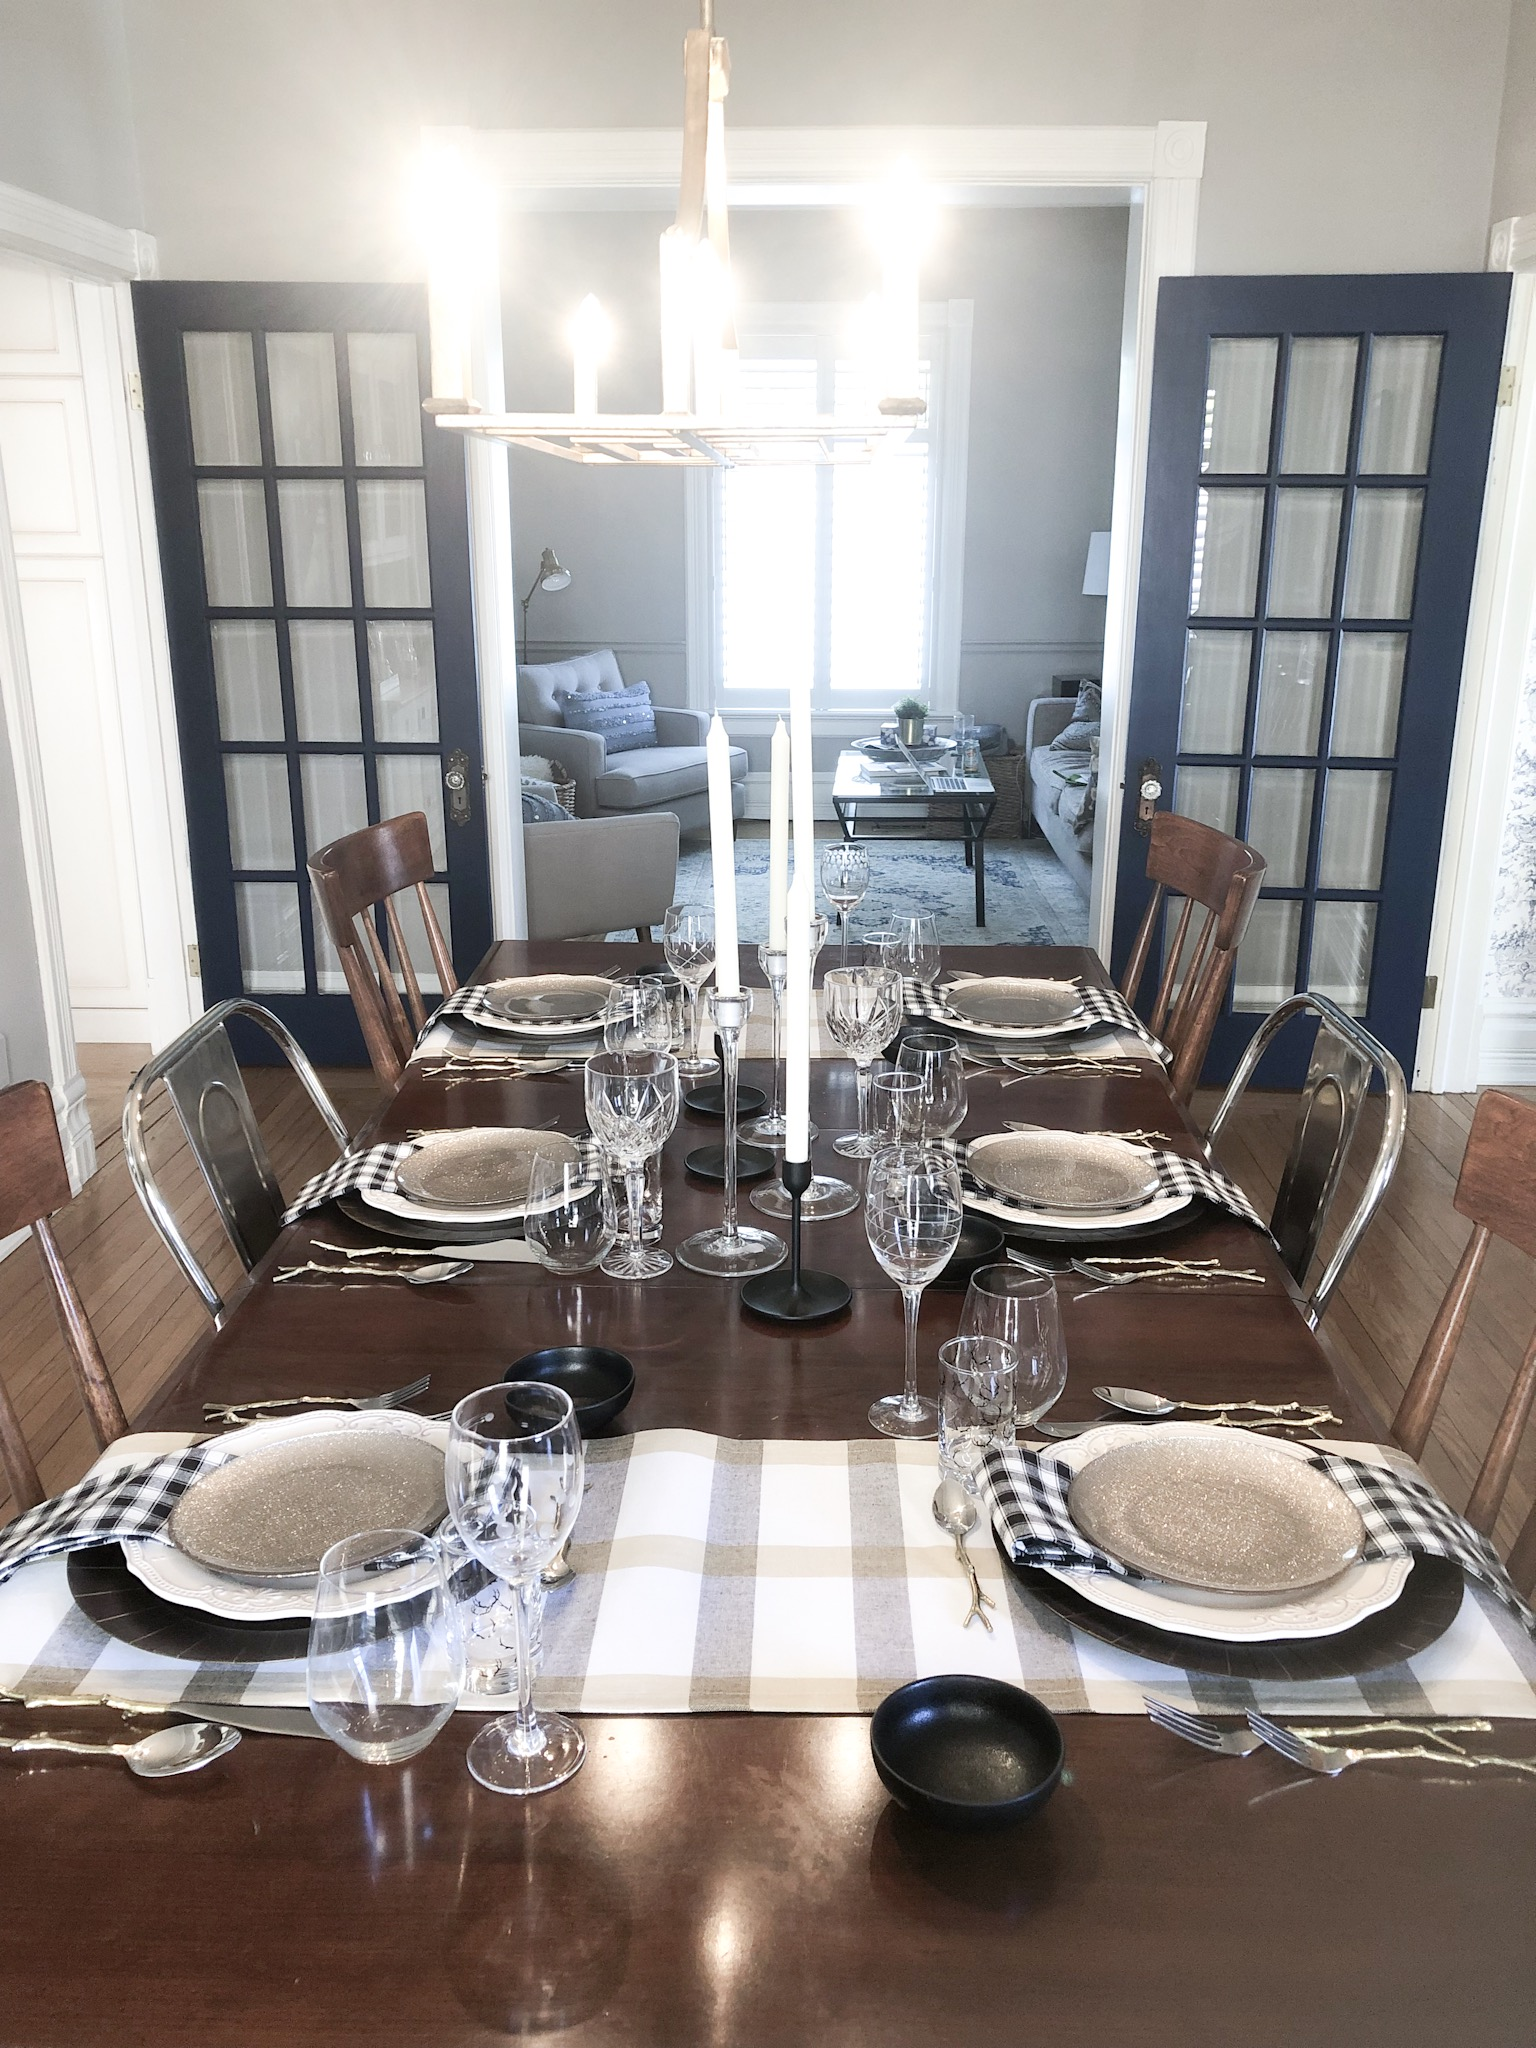 French doors in Dress Blues by Sherwin Williams are throughout the main floor of interior designer Heather Prestanski's living room